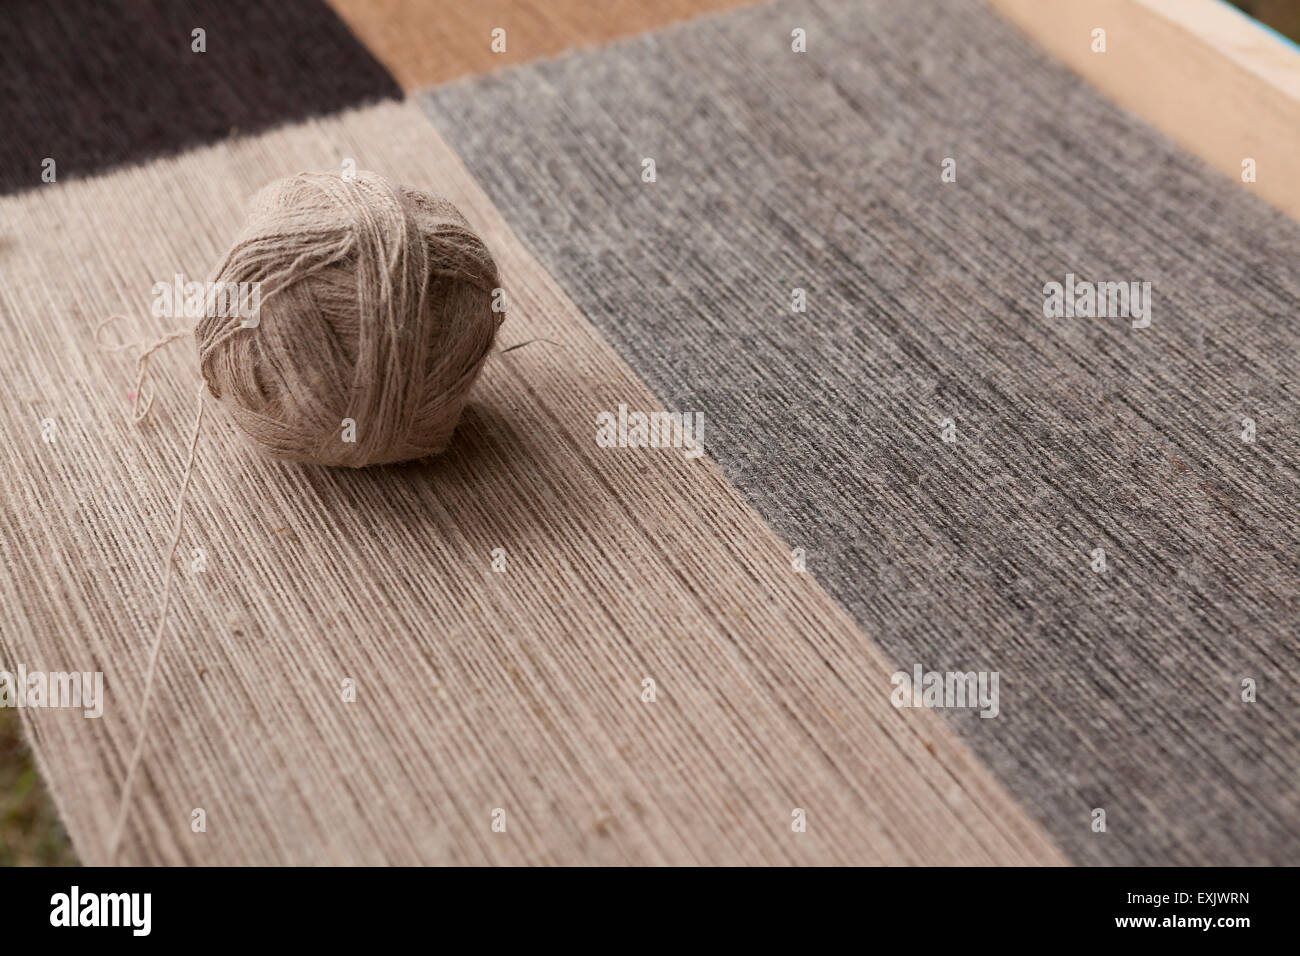 Wool yarn dyed with natural organic ingredients - Quechua people, Peru - Stock Image